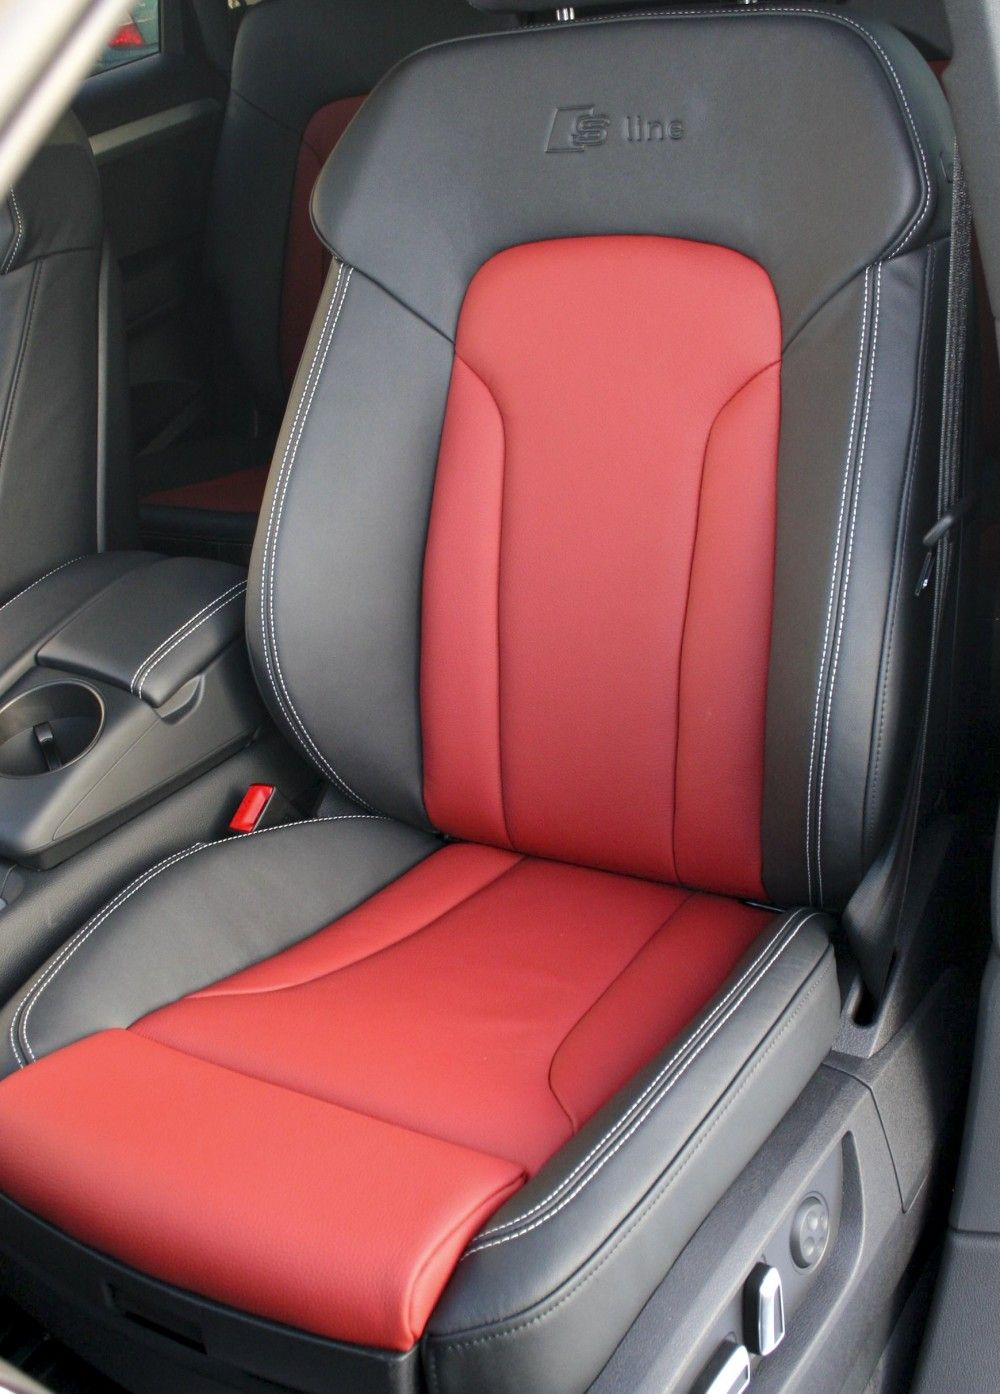 Red and Silver S Car Logo - Audi Q7 S-Line 7 Seat Black Leather with Red Inserts & Silver ...